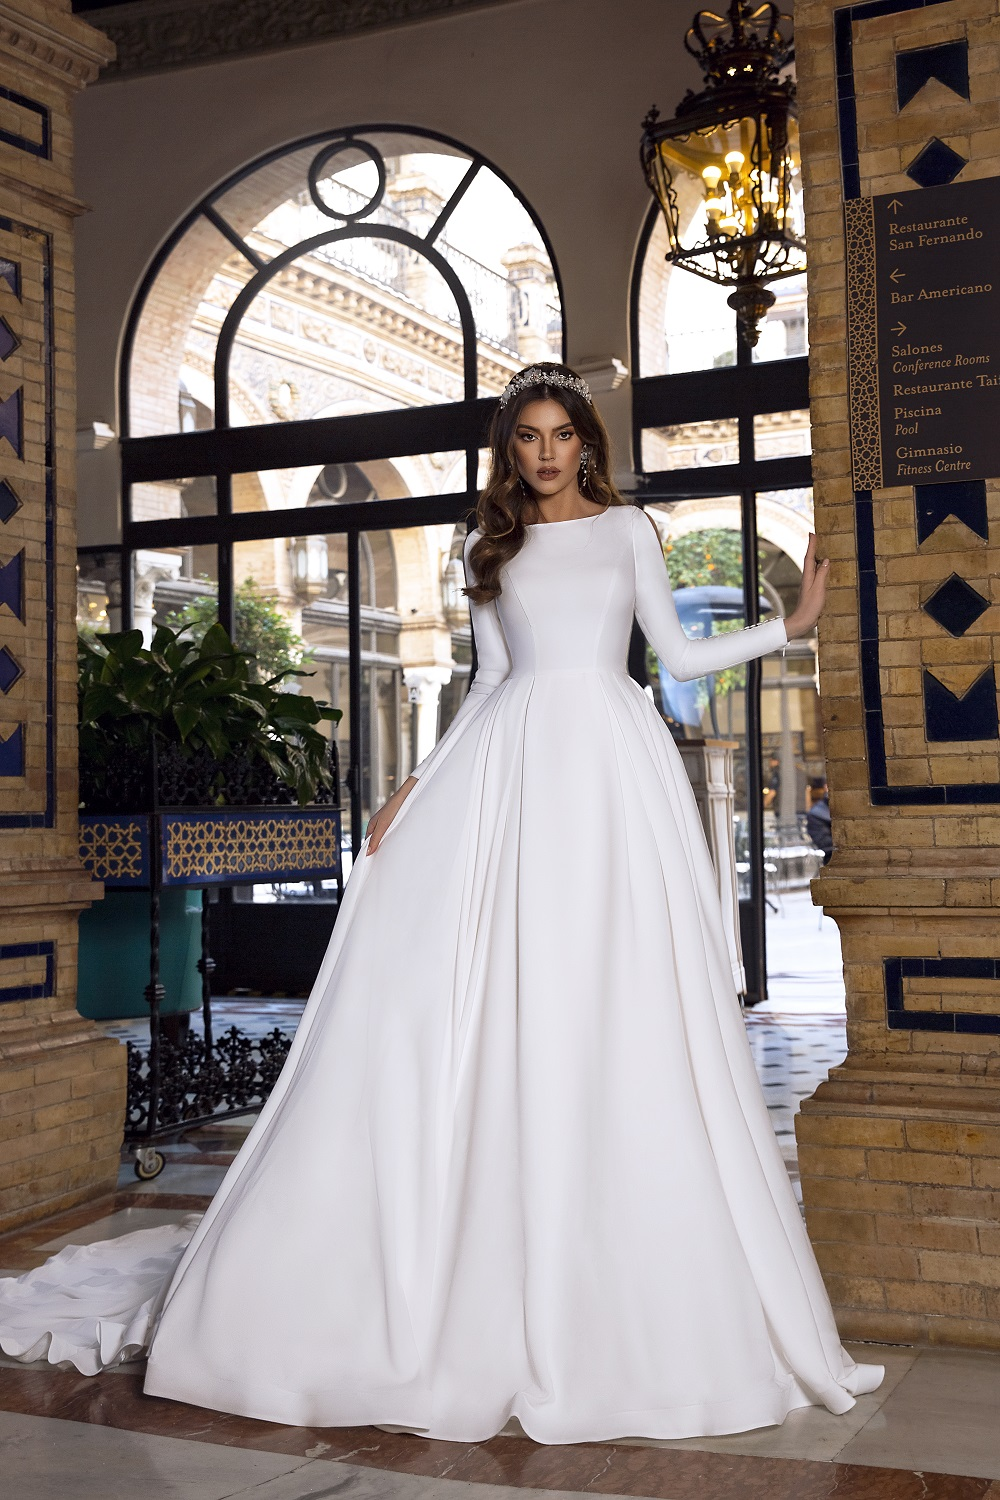 Current Wedding Dress Trends For 2020 What S Hot Right Now Tina Valerdi,Casual Wedding Dresses For Men Sri Lanka